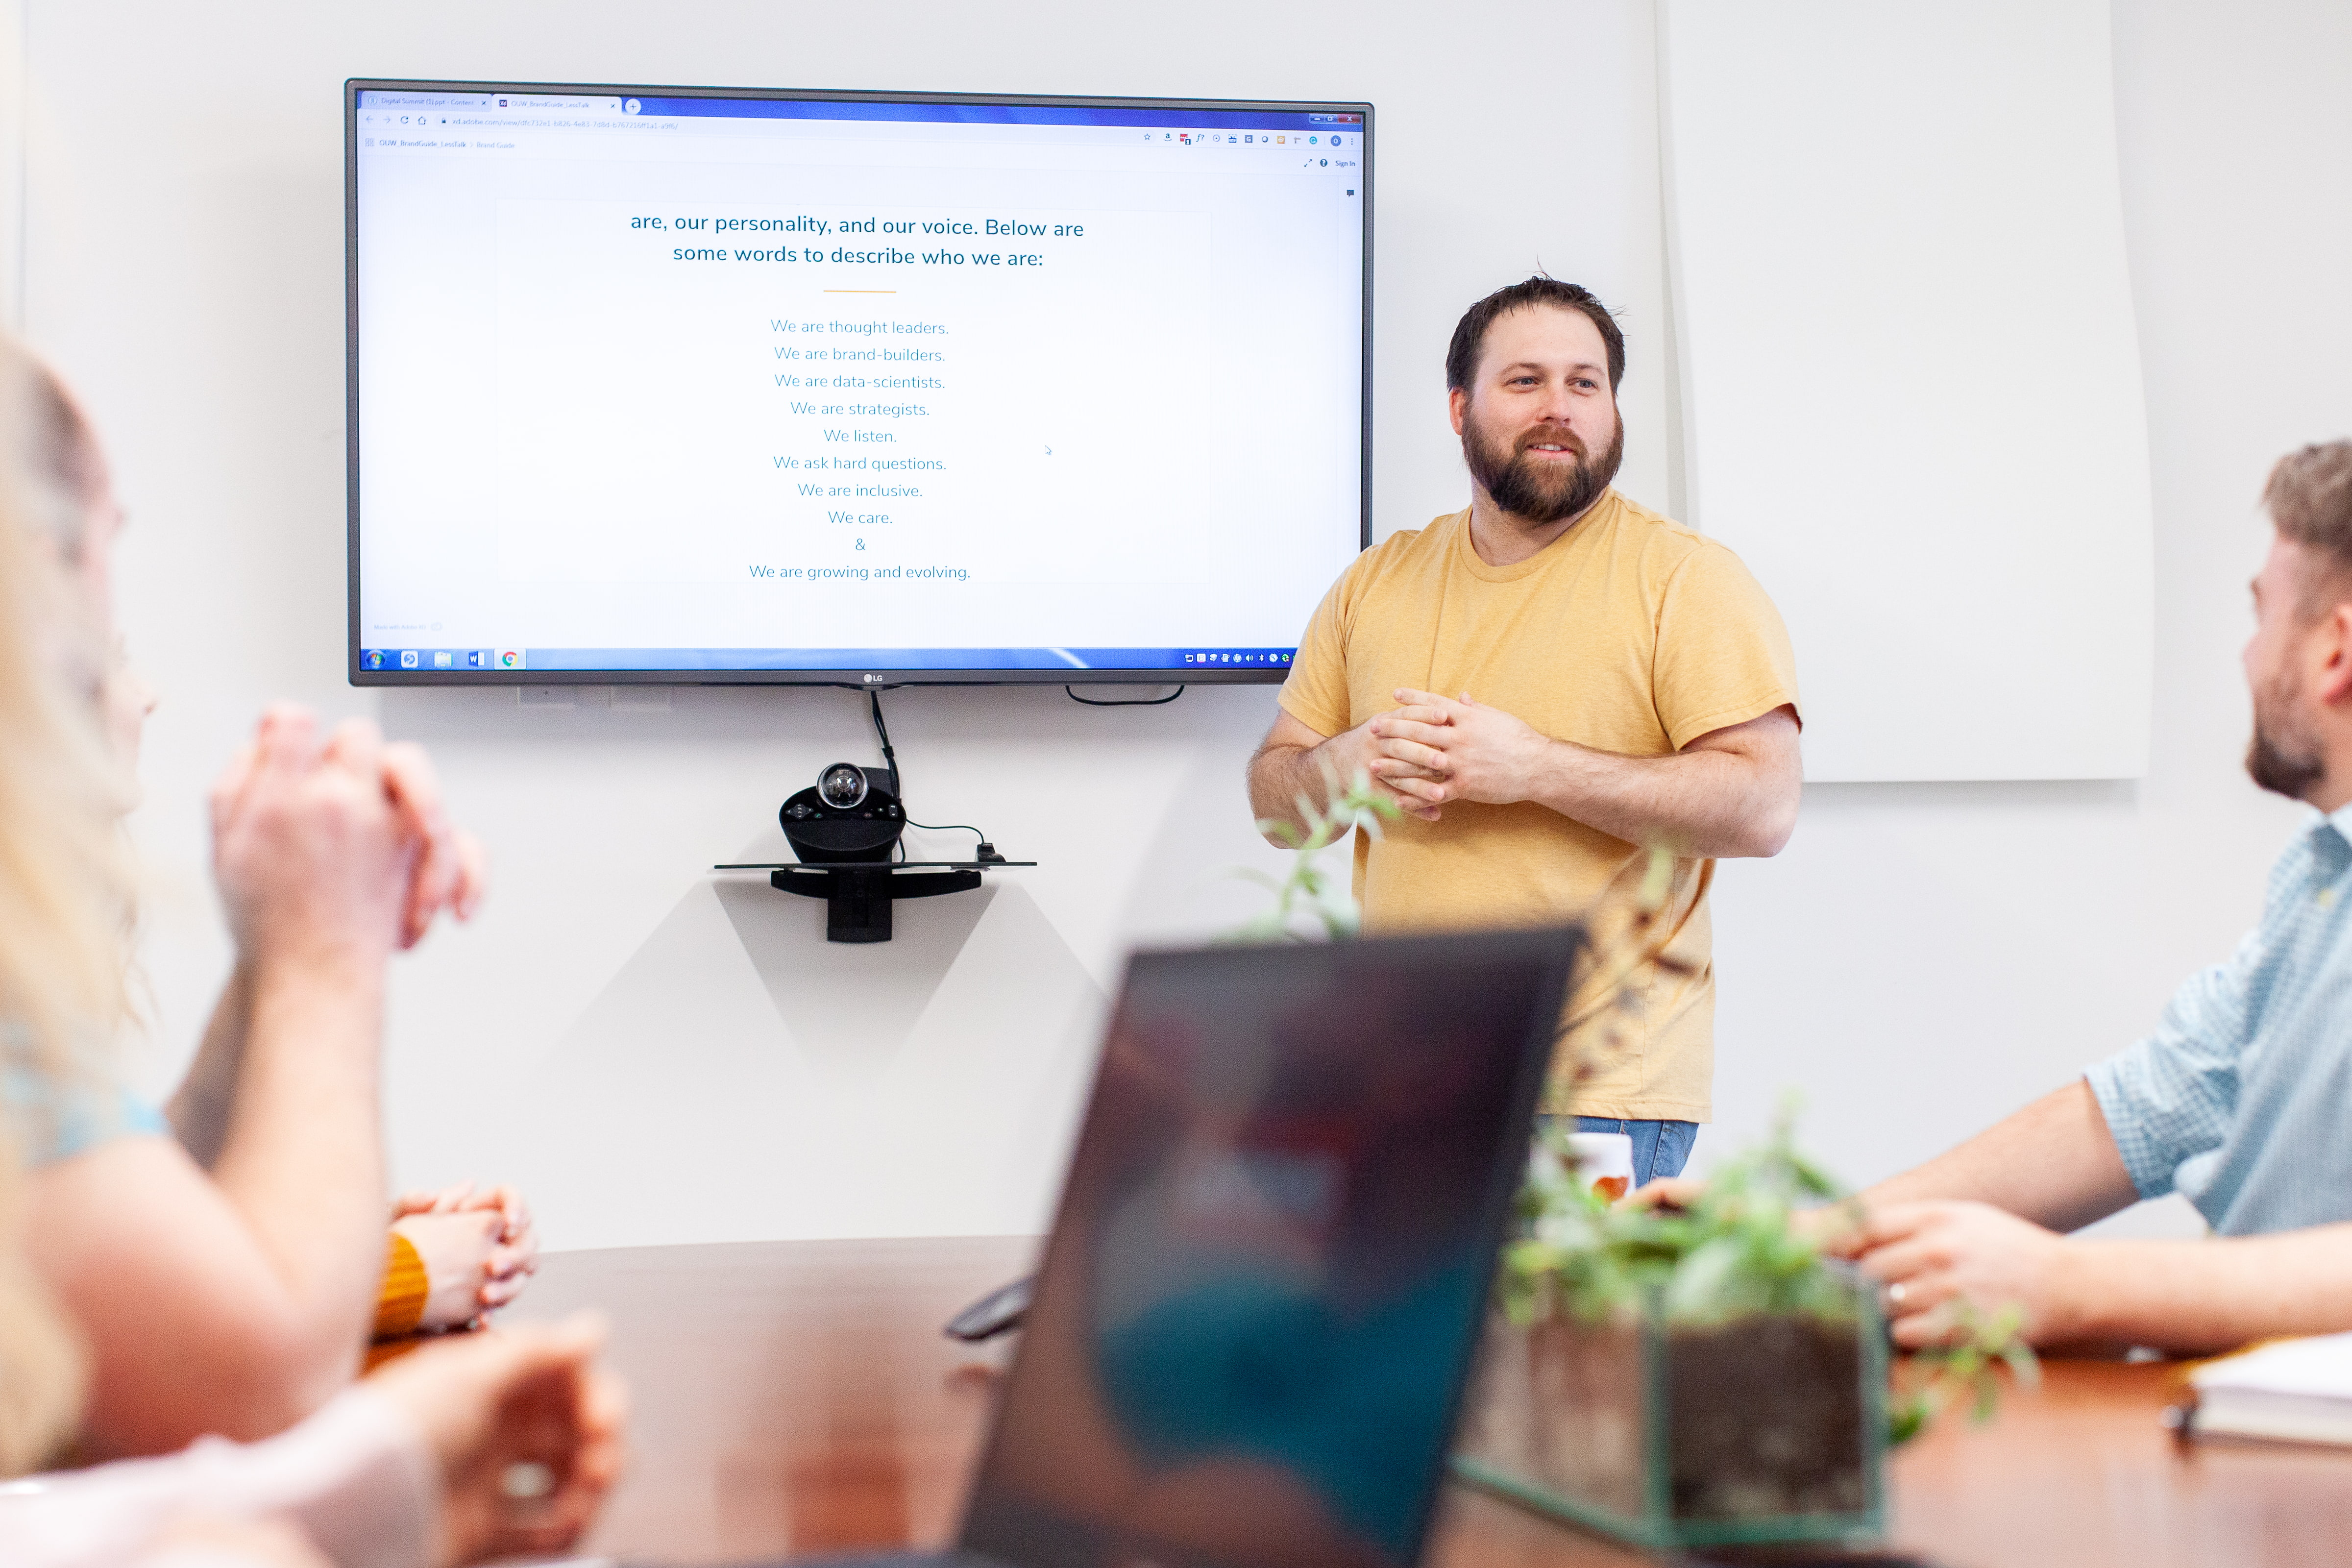 Man making a marketing and branding presentation to a conference room of people.